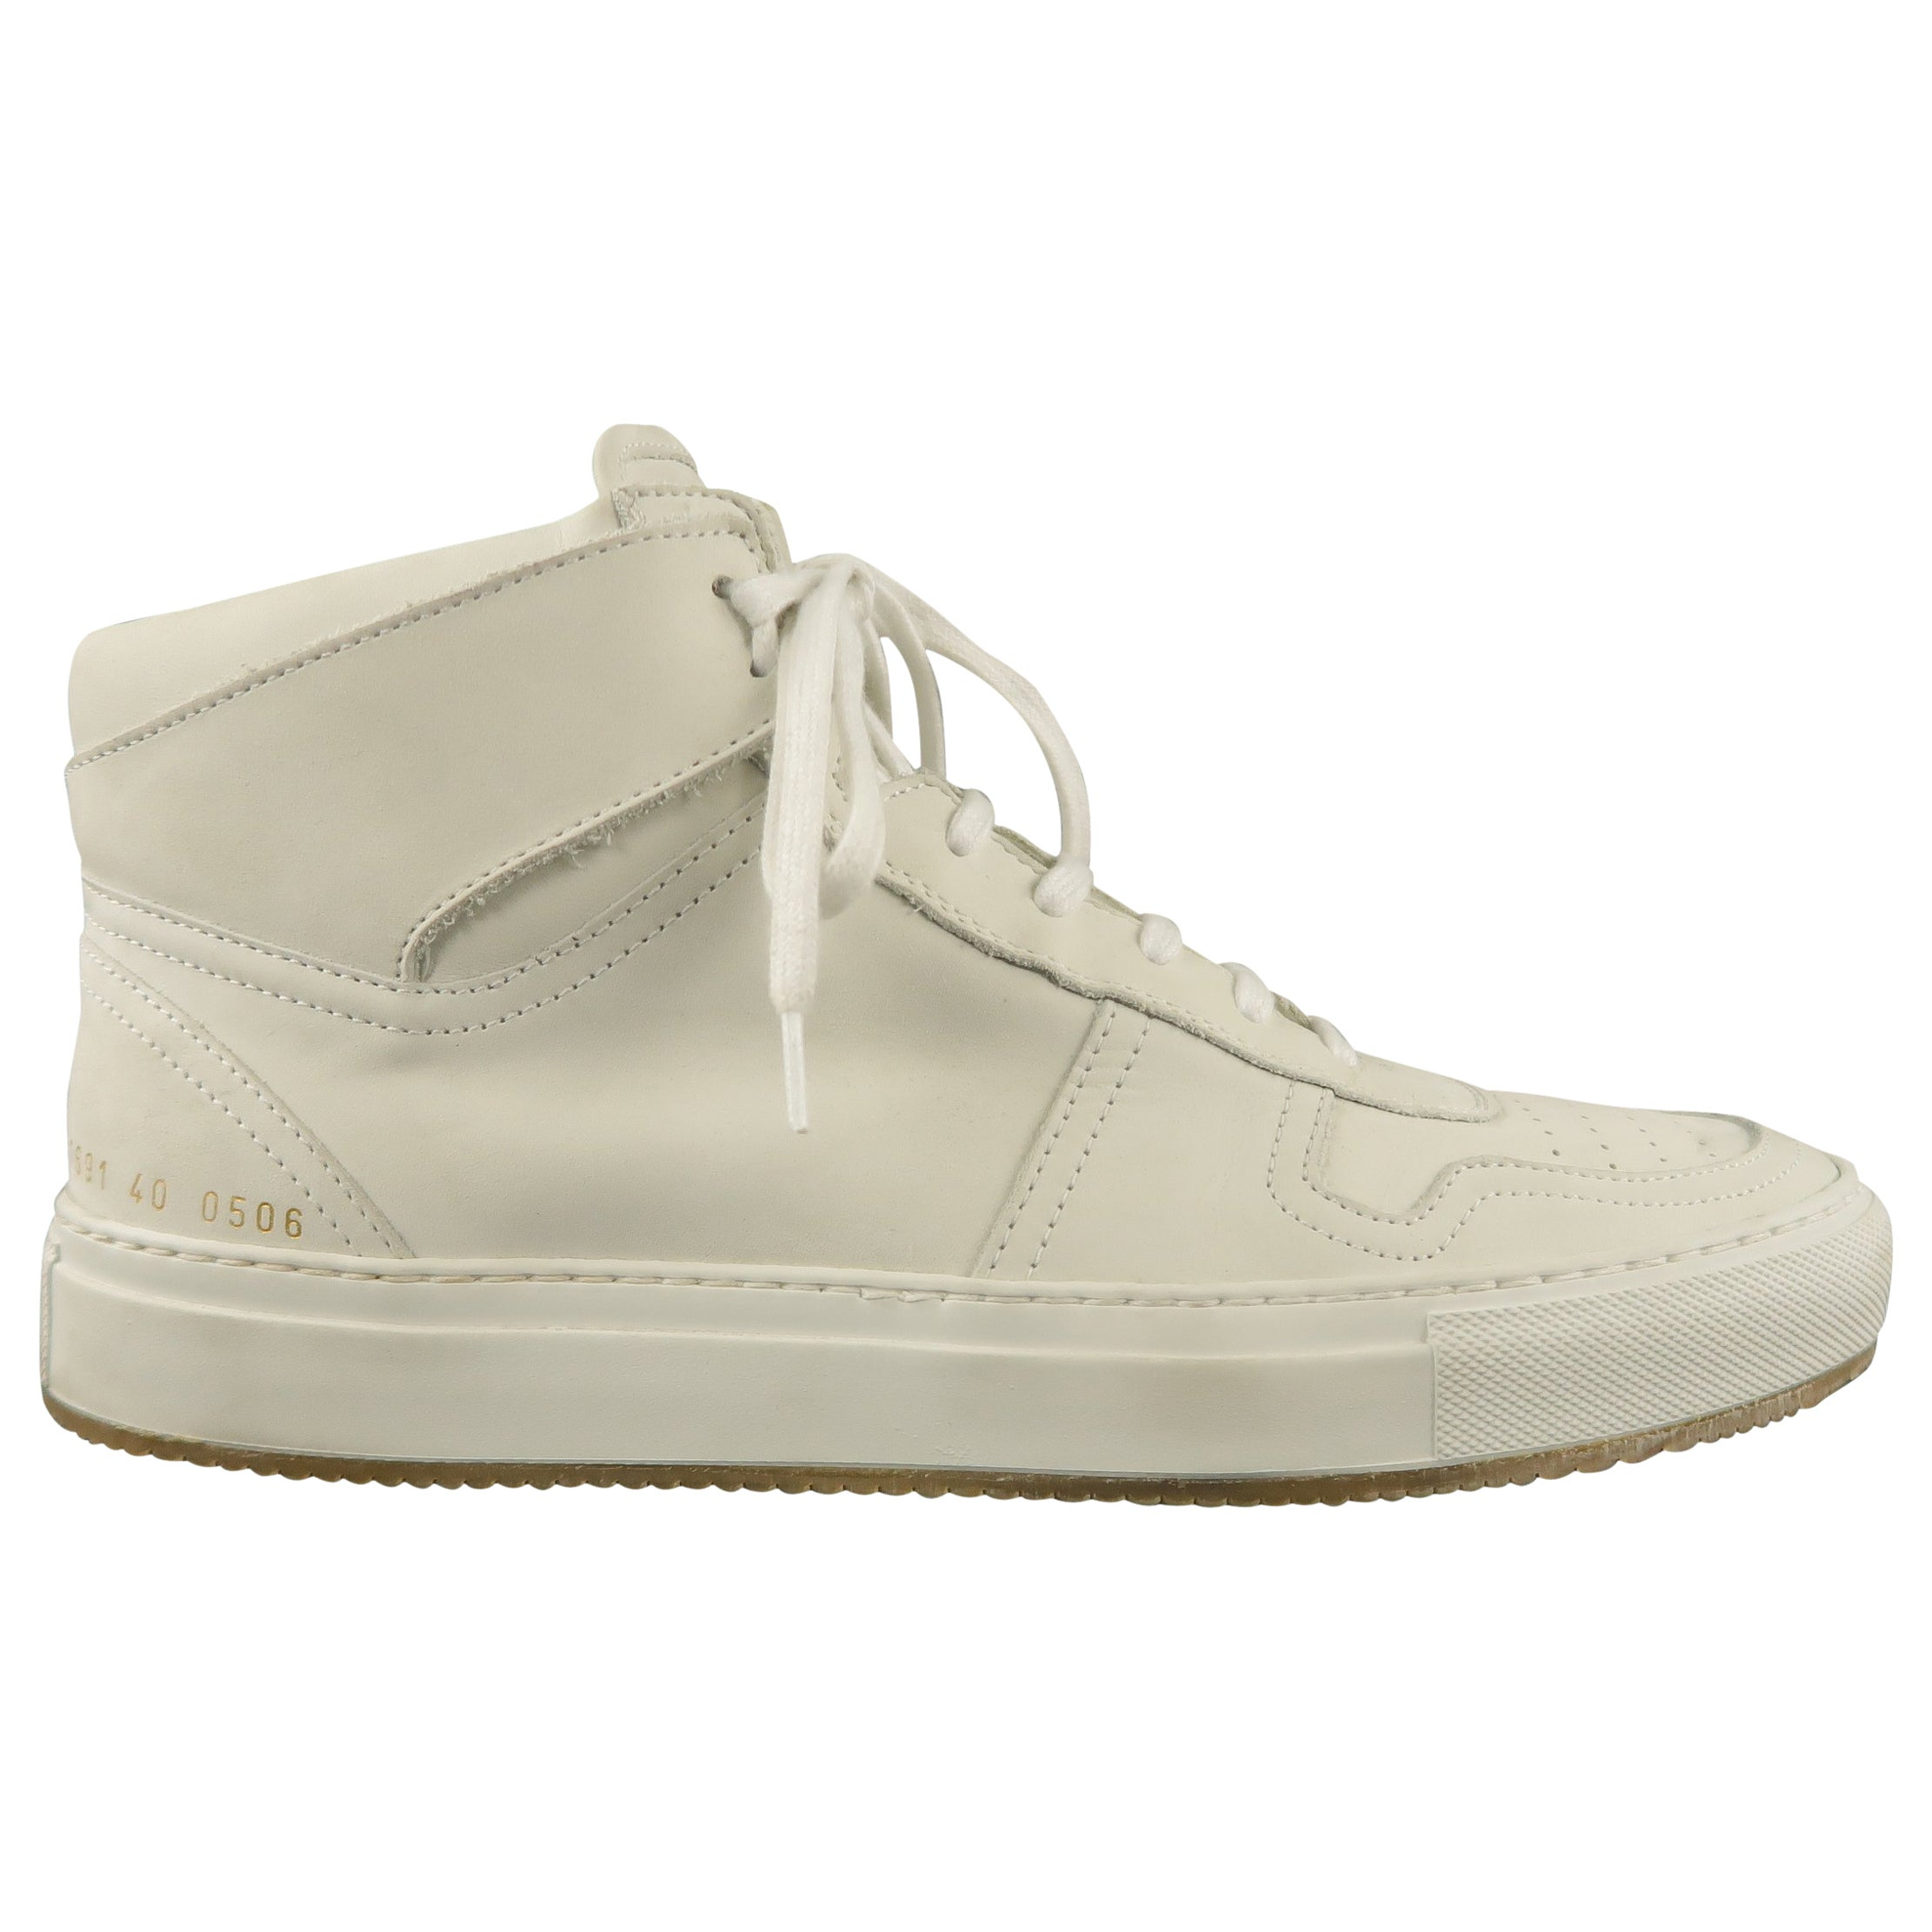 358033972044e COMMON PROJECTS Size 7 Off White Solid Leather High Top Sneakers at 1stdibs